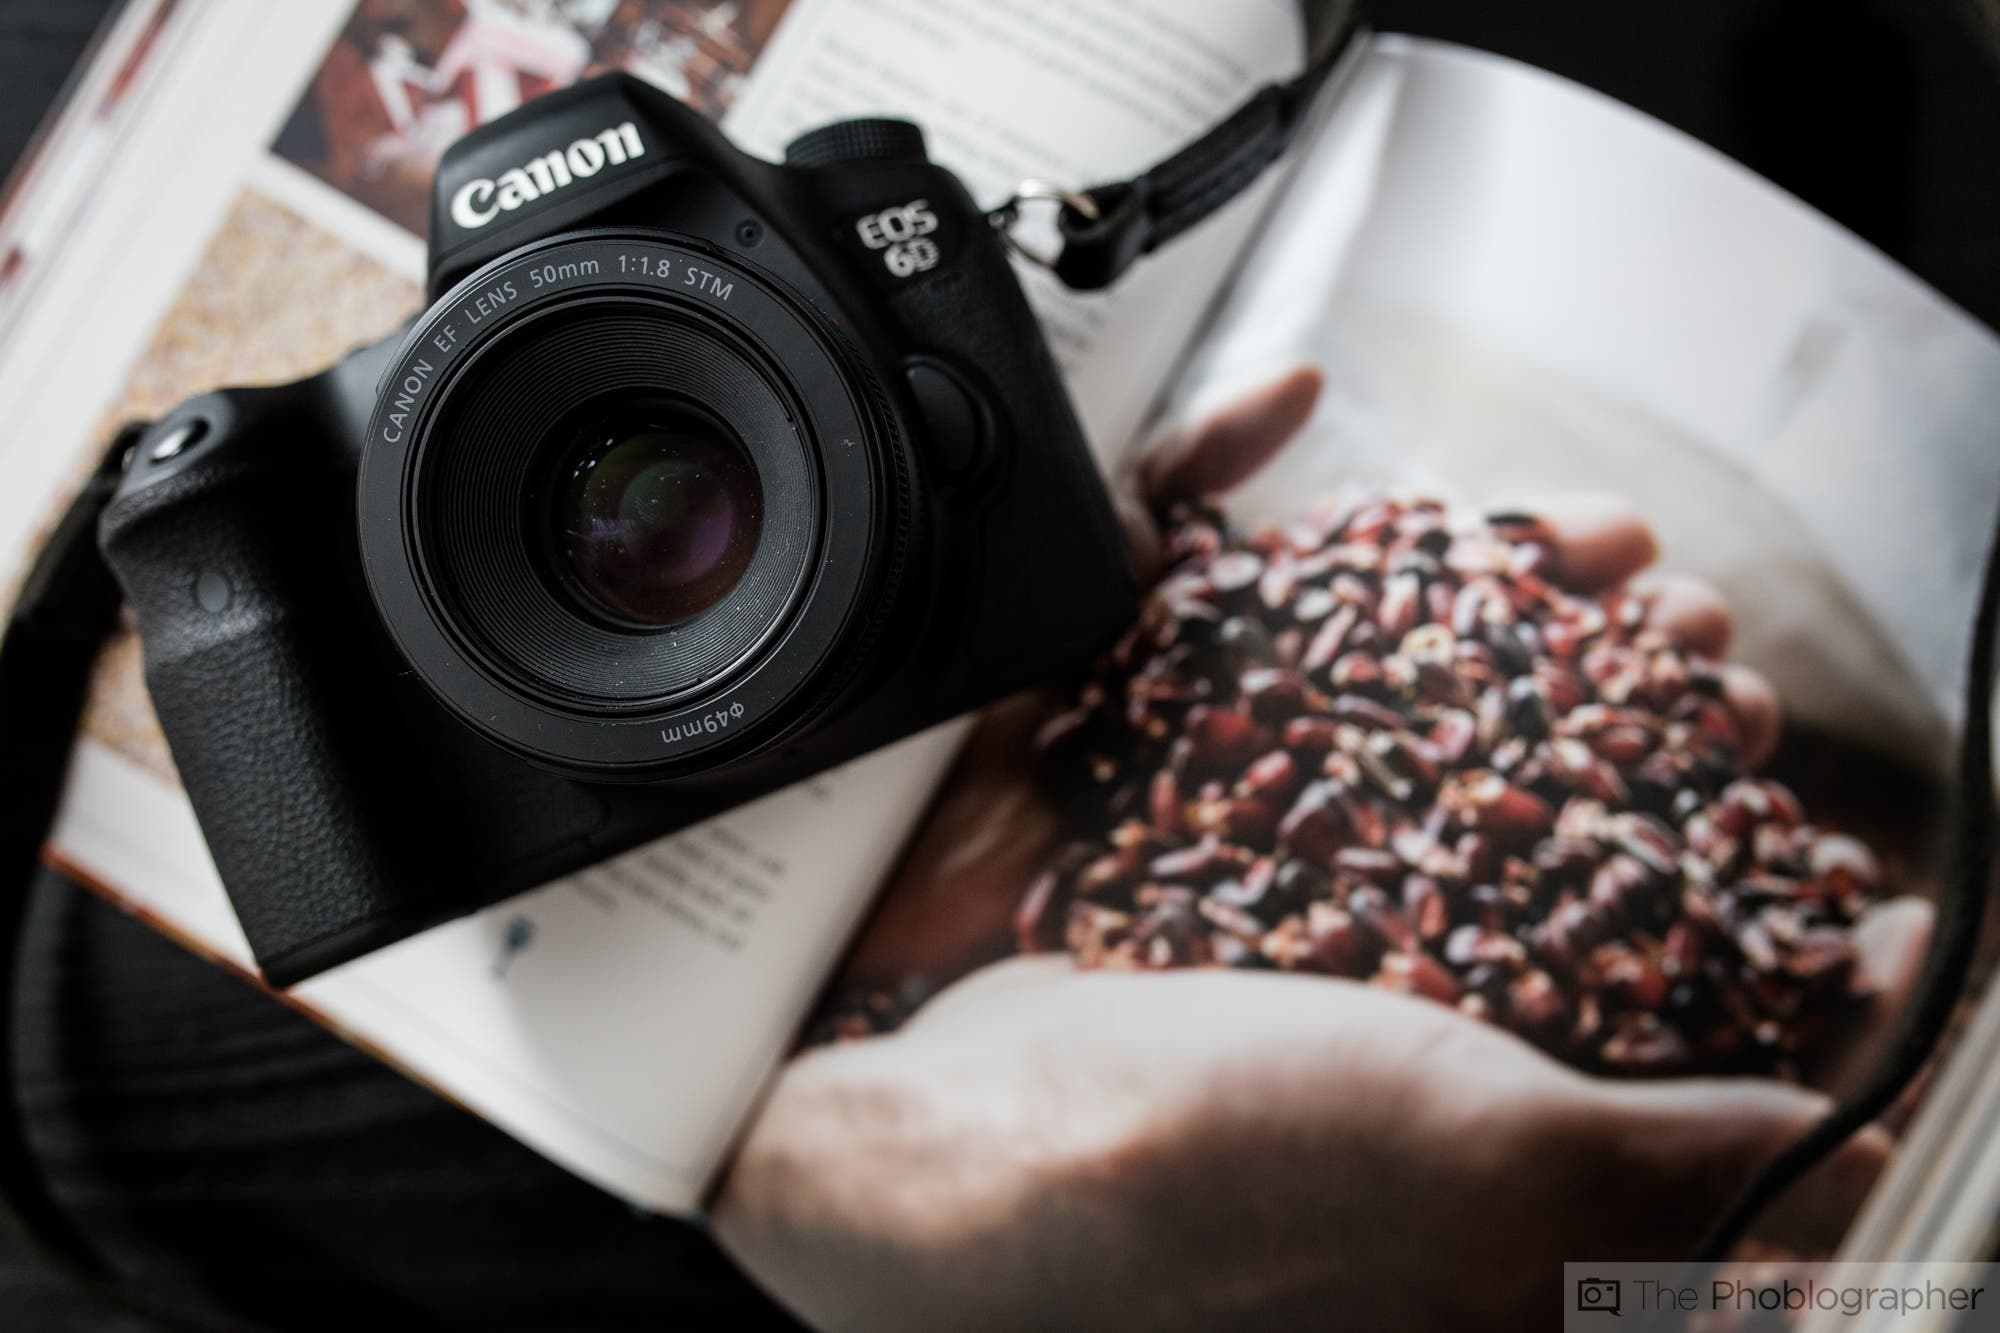 Review: Canon 50mm f1.8 STM (Canon EF)